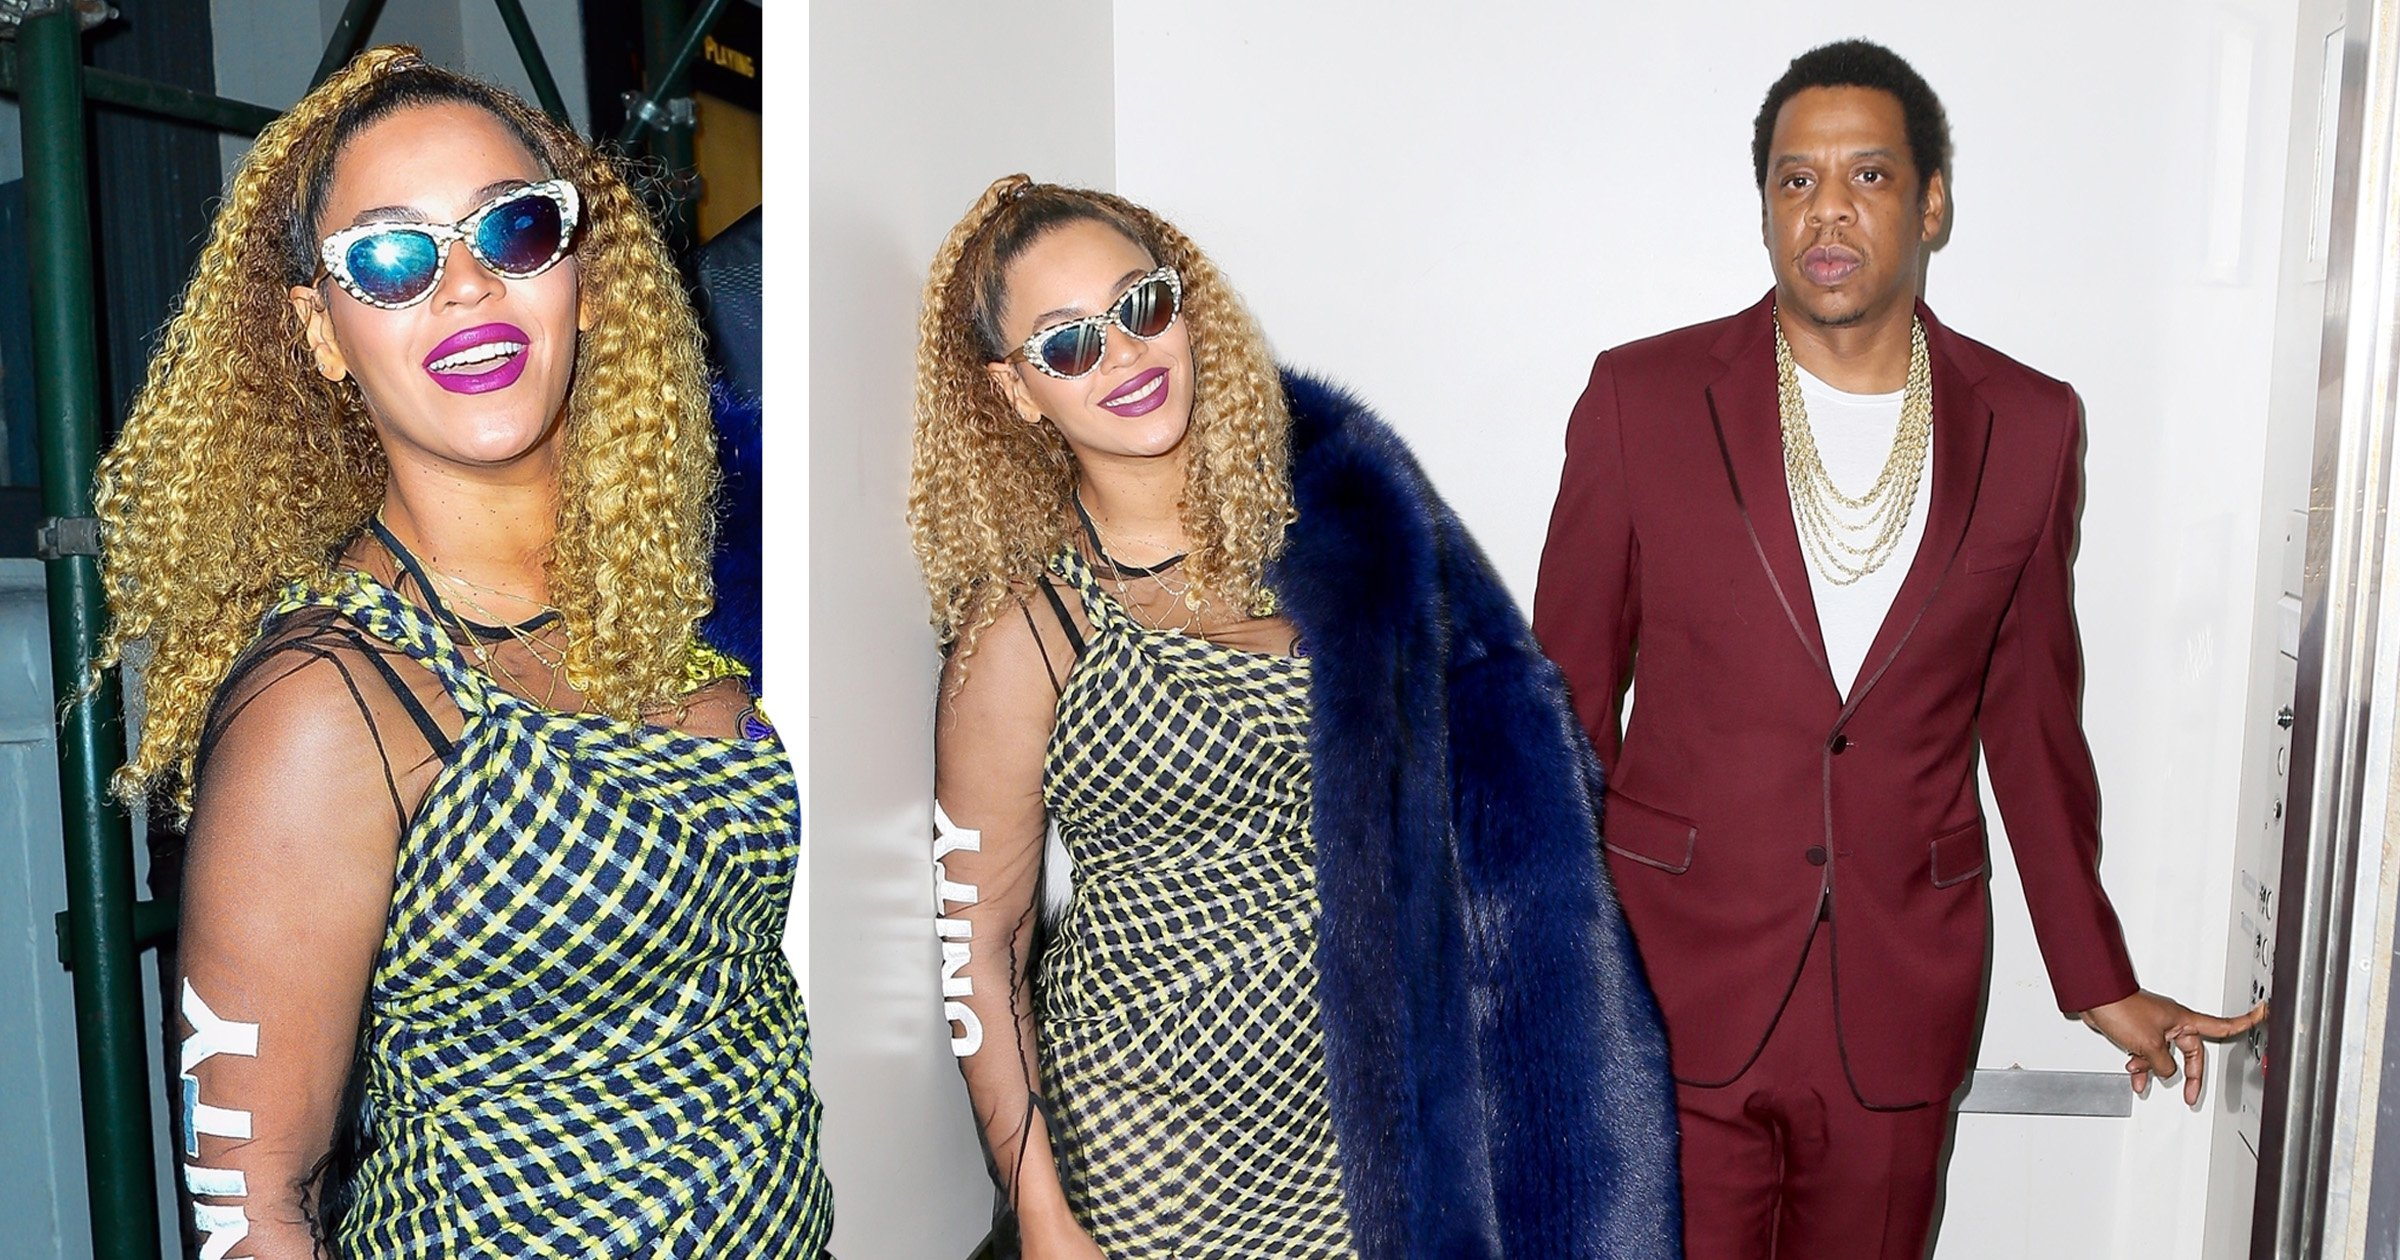 Beyonce and Jay-Z are all smiles in a lift three years after that infamous Solange bust-up